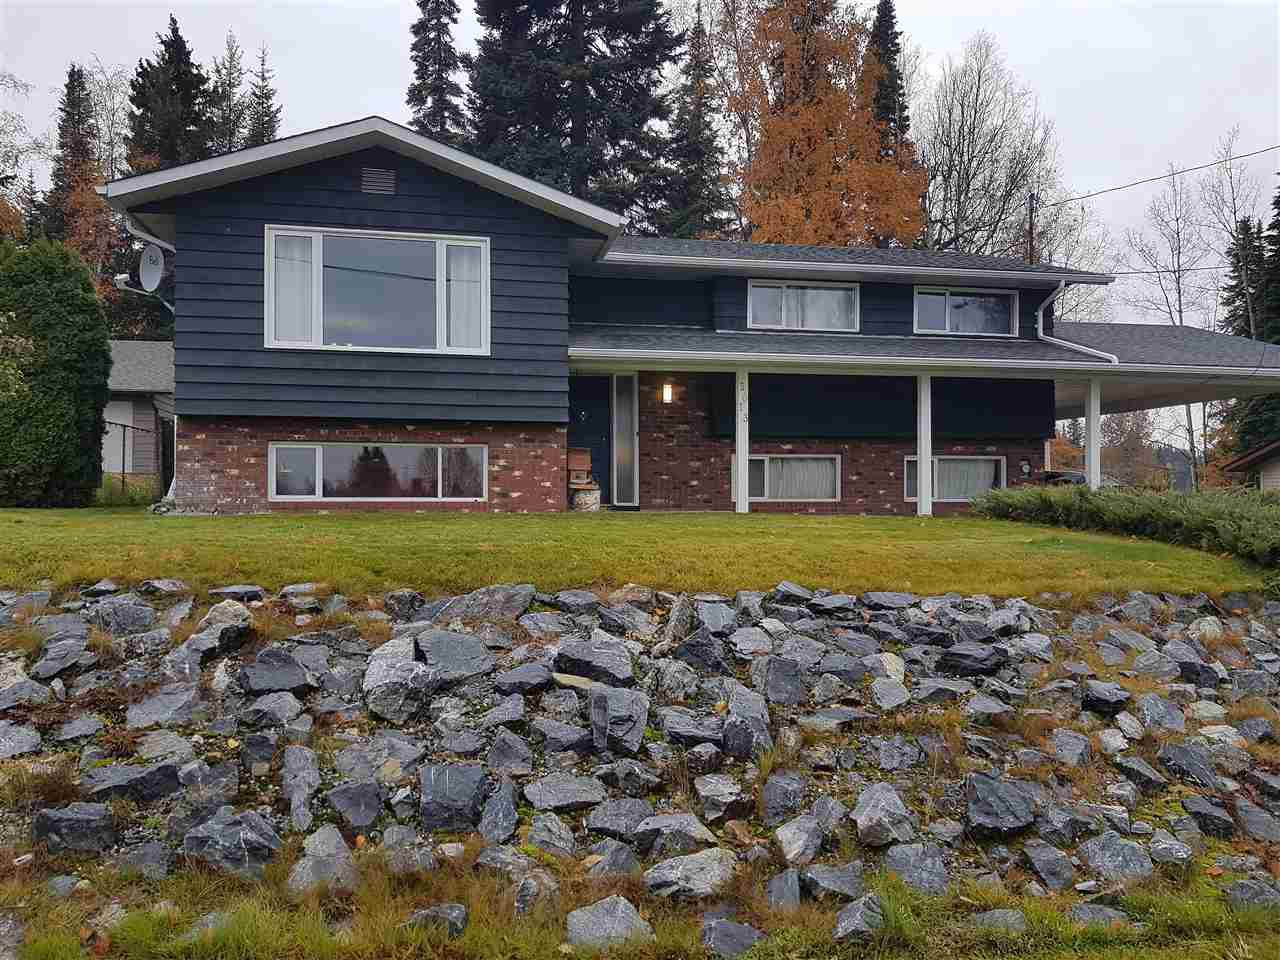 Photo 1: Photos: 3013 OAKRIDGE Crescent in Prince George: Ingala House for sale (PG City North (Zone 73))  : MLS®# R2413772